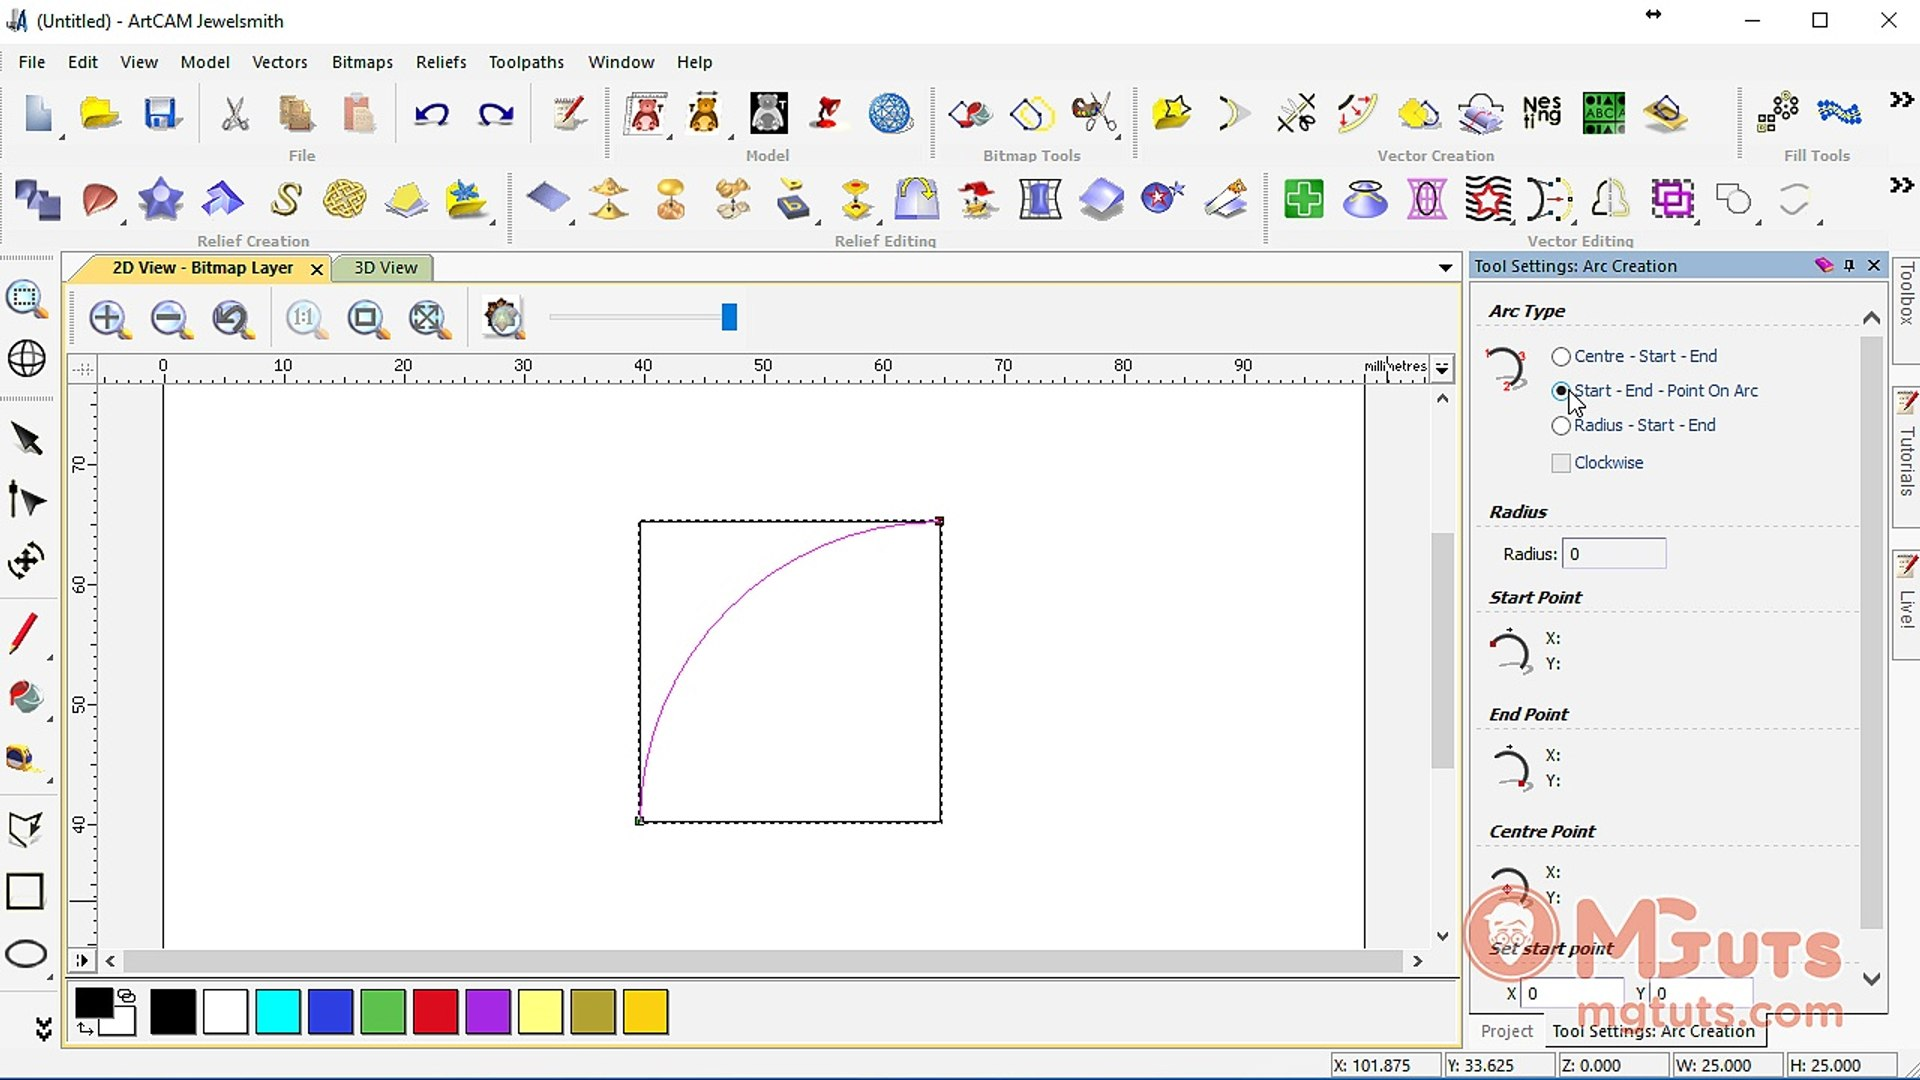 How to use Artcam Arc tool - Free Artcam video tutorials for new beginners